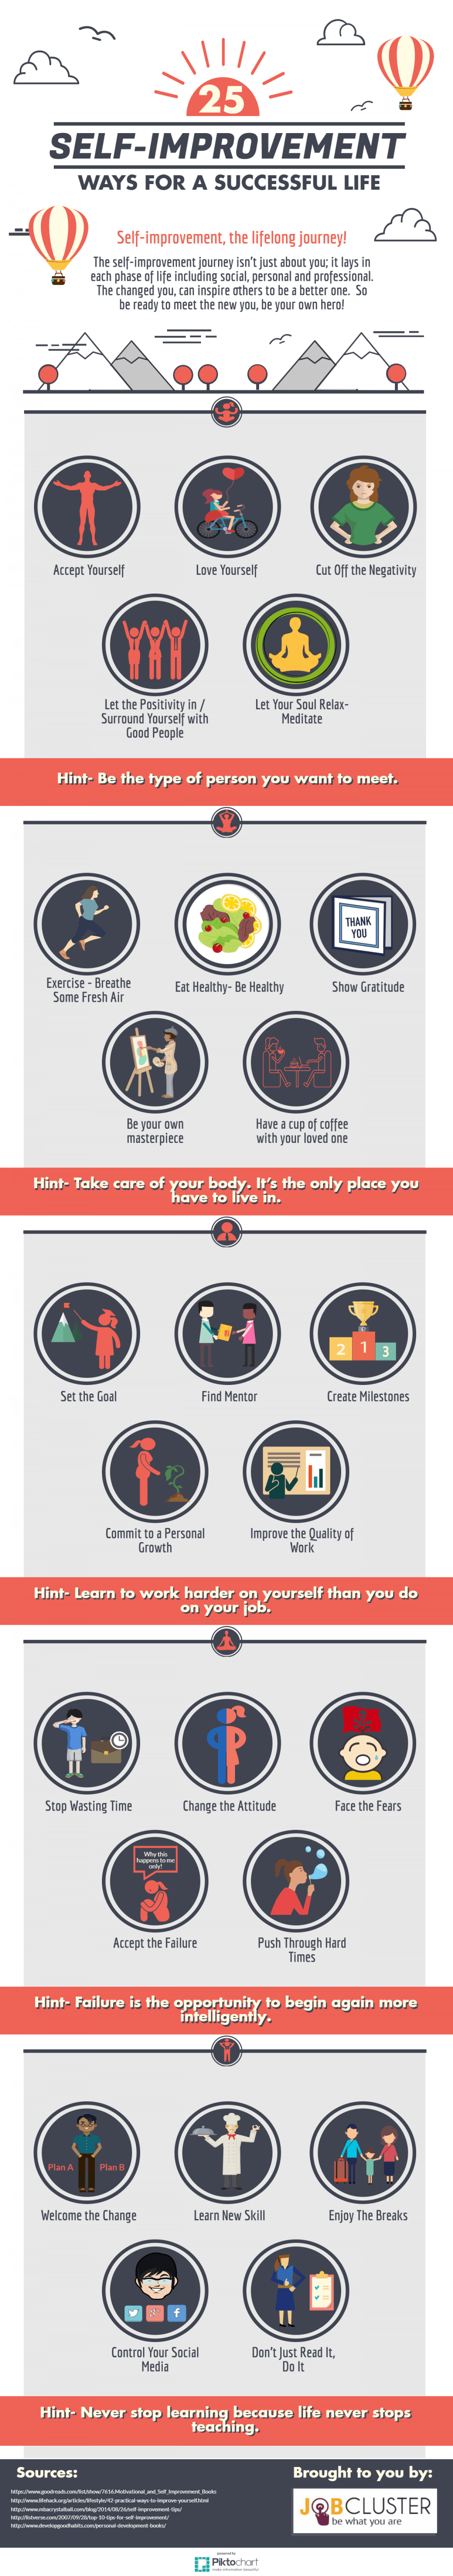 25 Self-Improvement Tips for a Successful Life Infographic